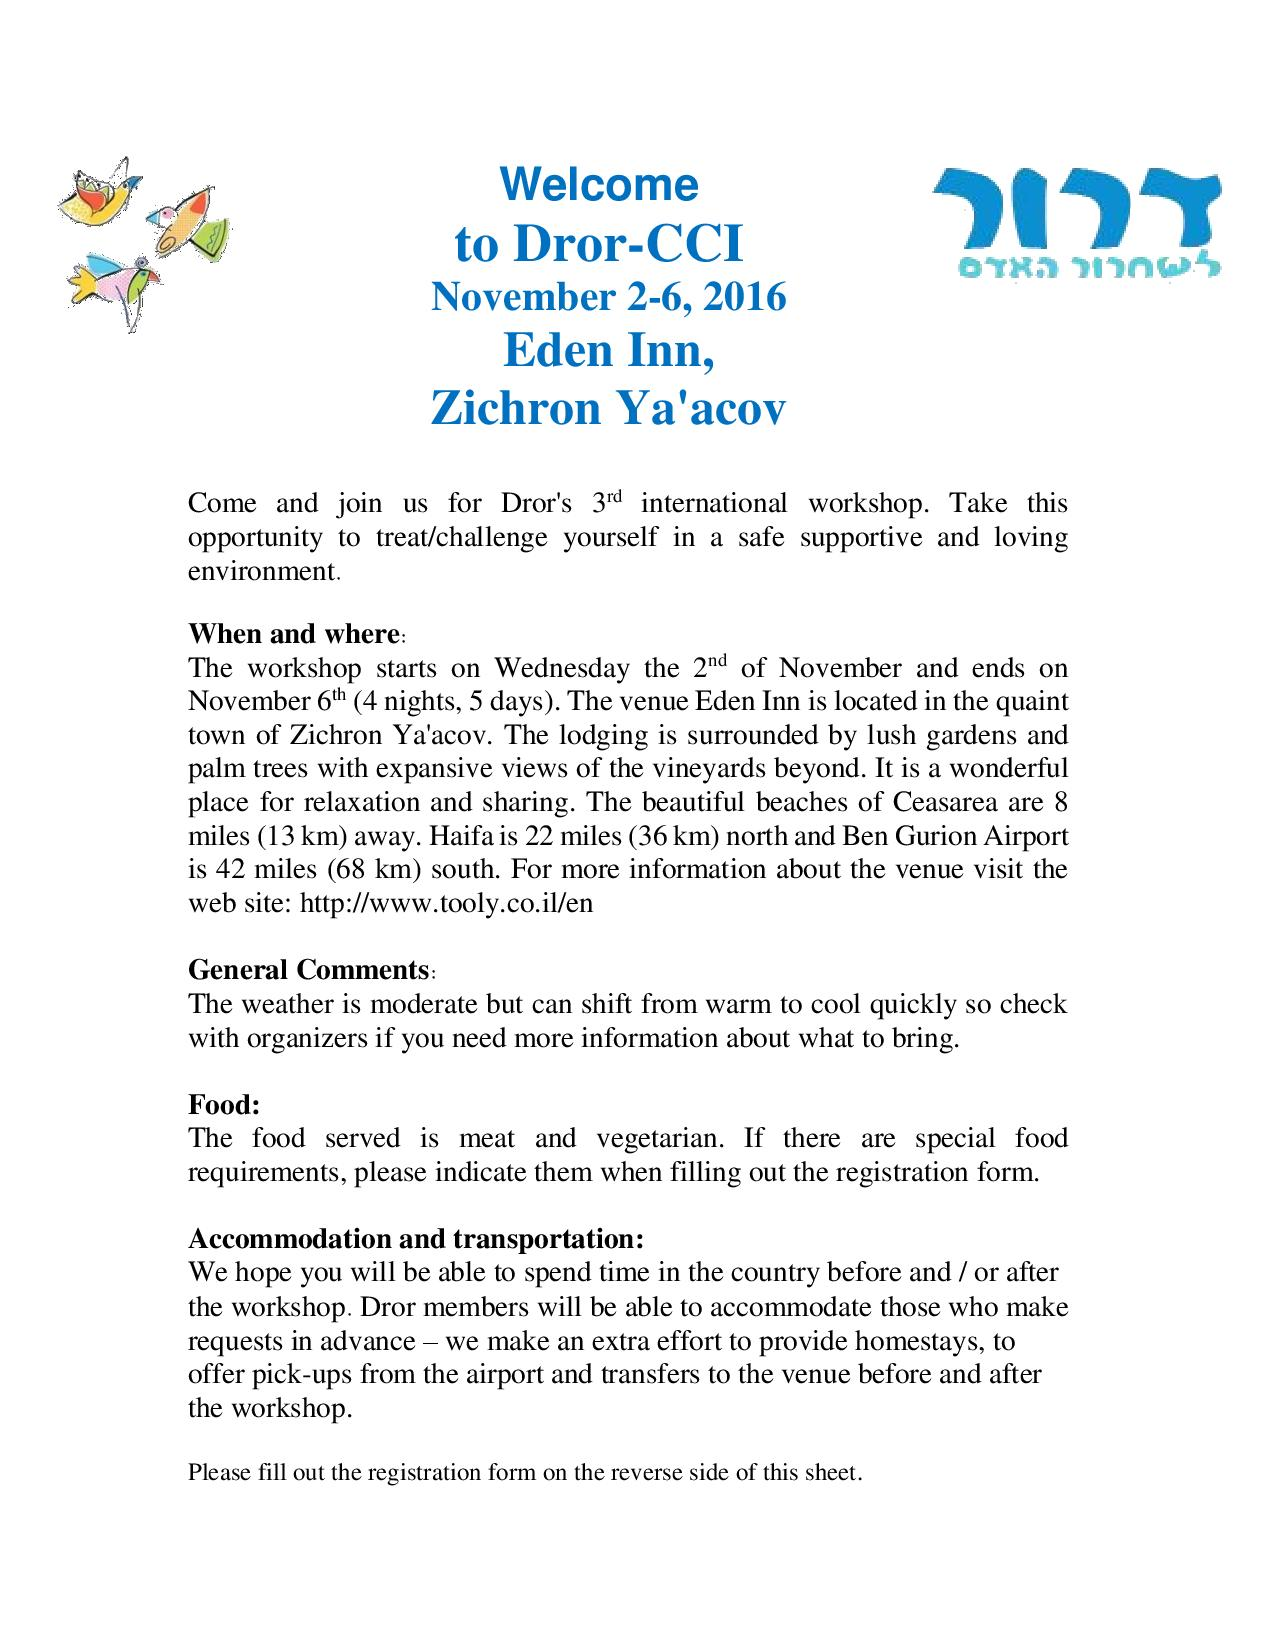 Come and join us for Dror CCI 2016